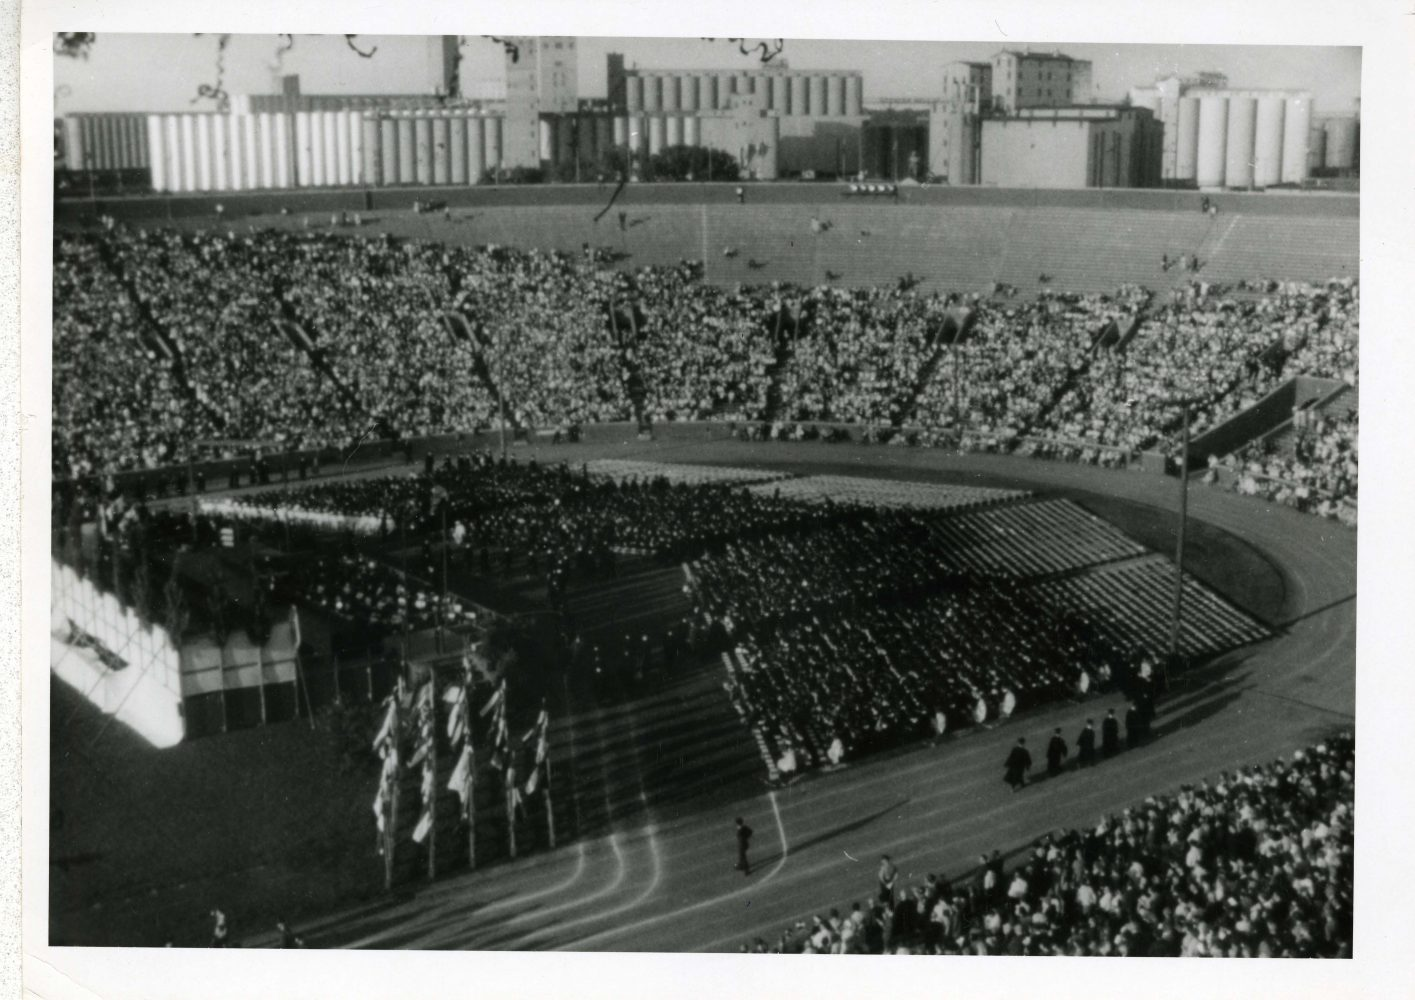 Graduates sit in chairs on the field of Memorial Stadium in front of a stage. Attendees are in the stadium bleachers.